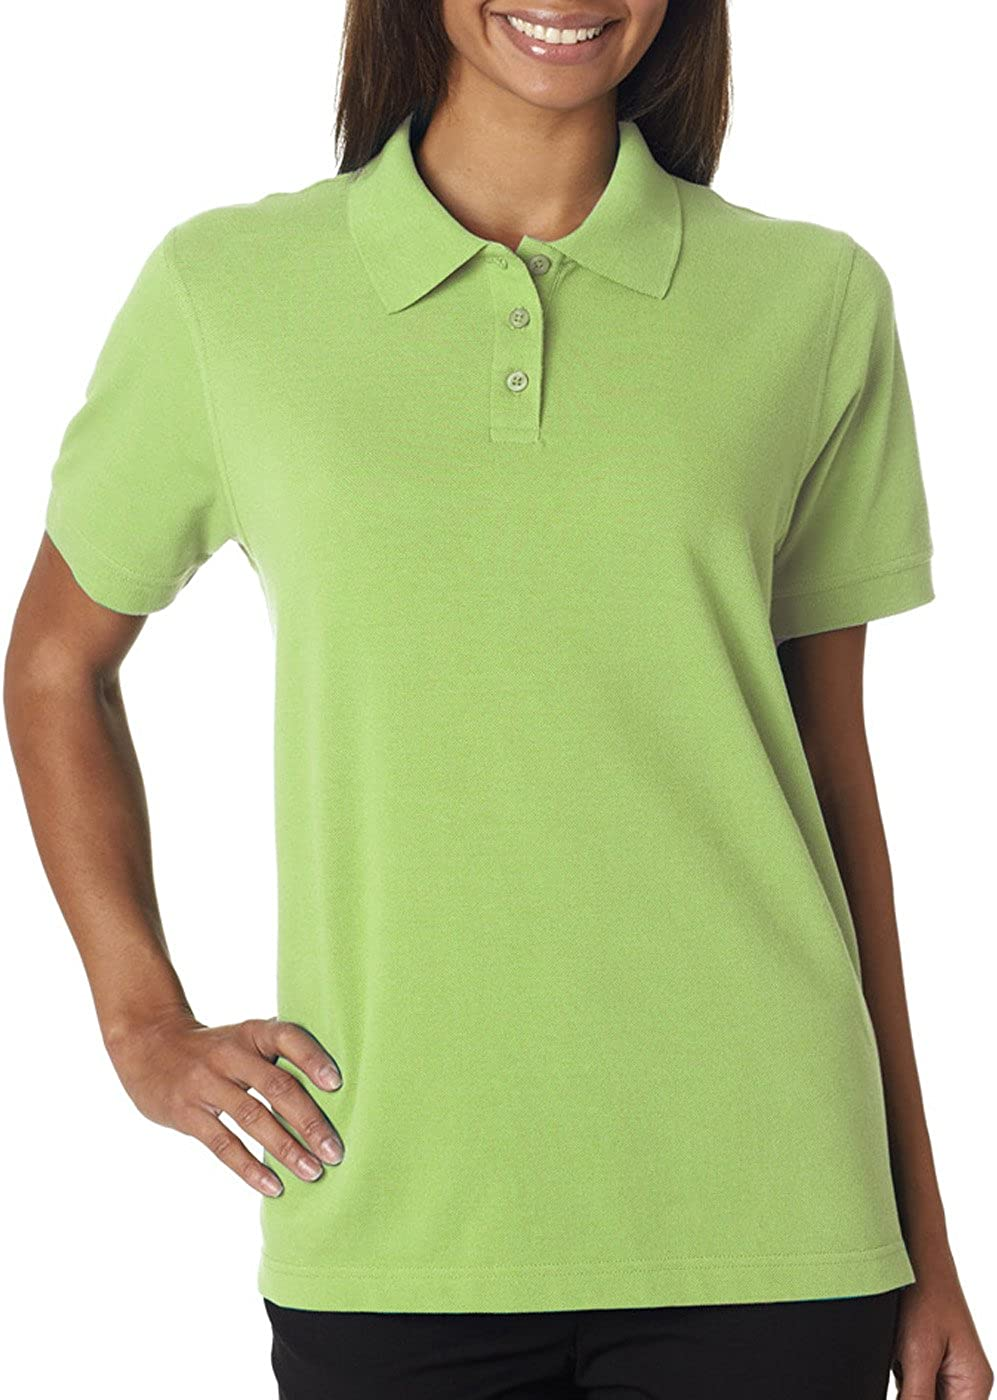 UltraClubs Women's Classic Pique Polo